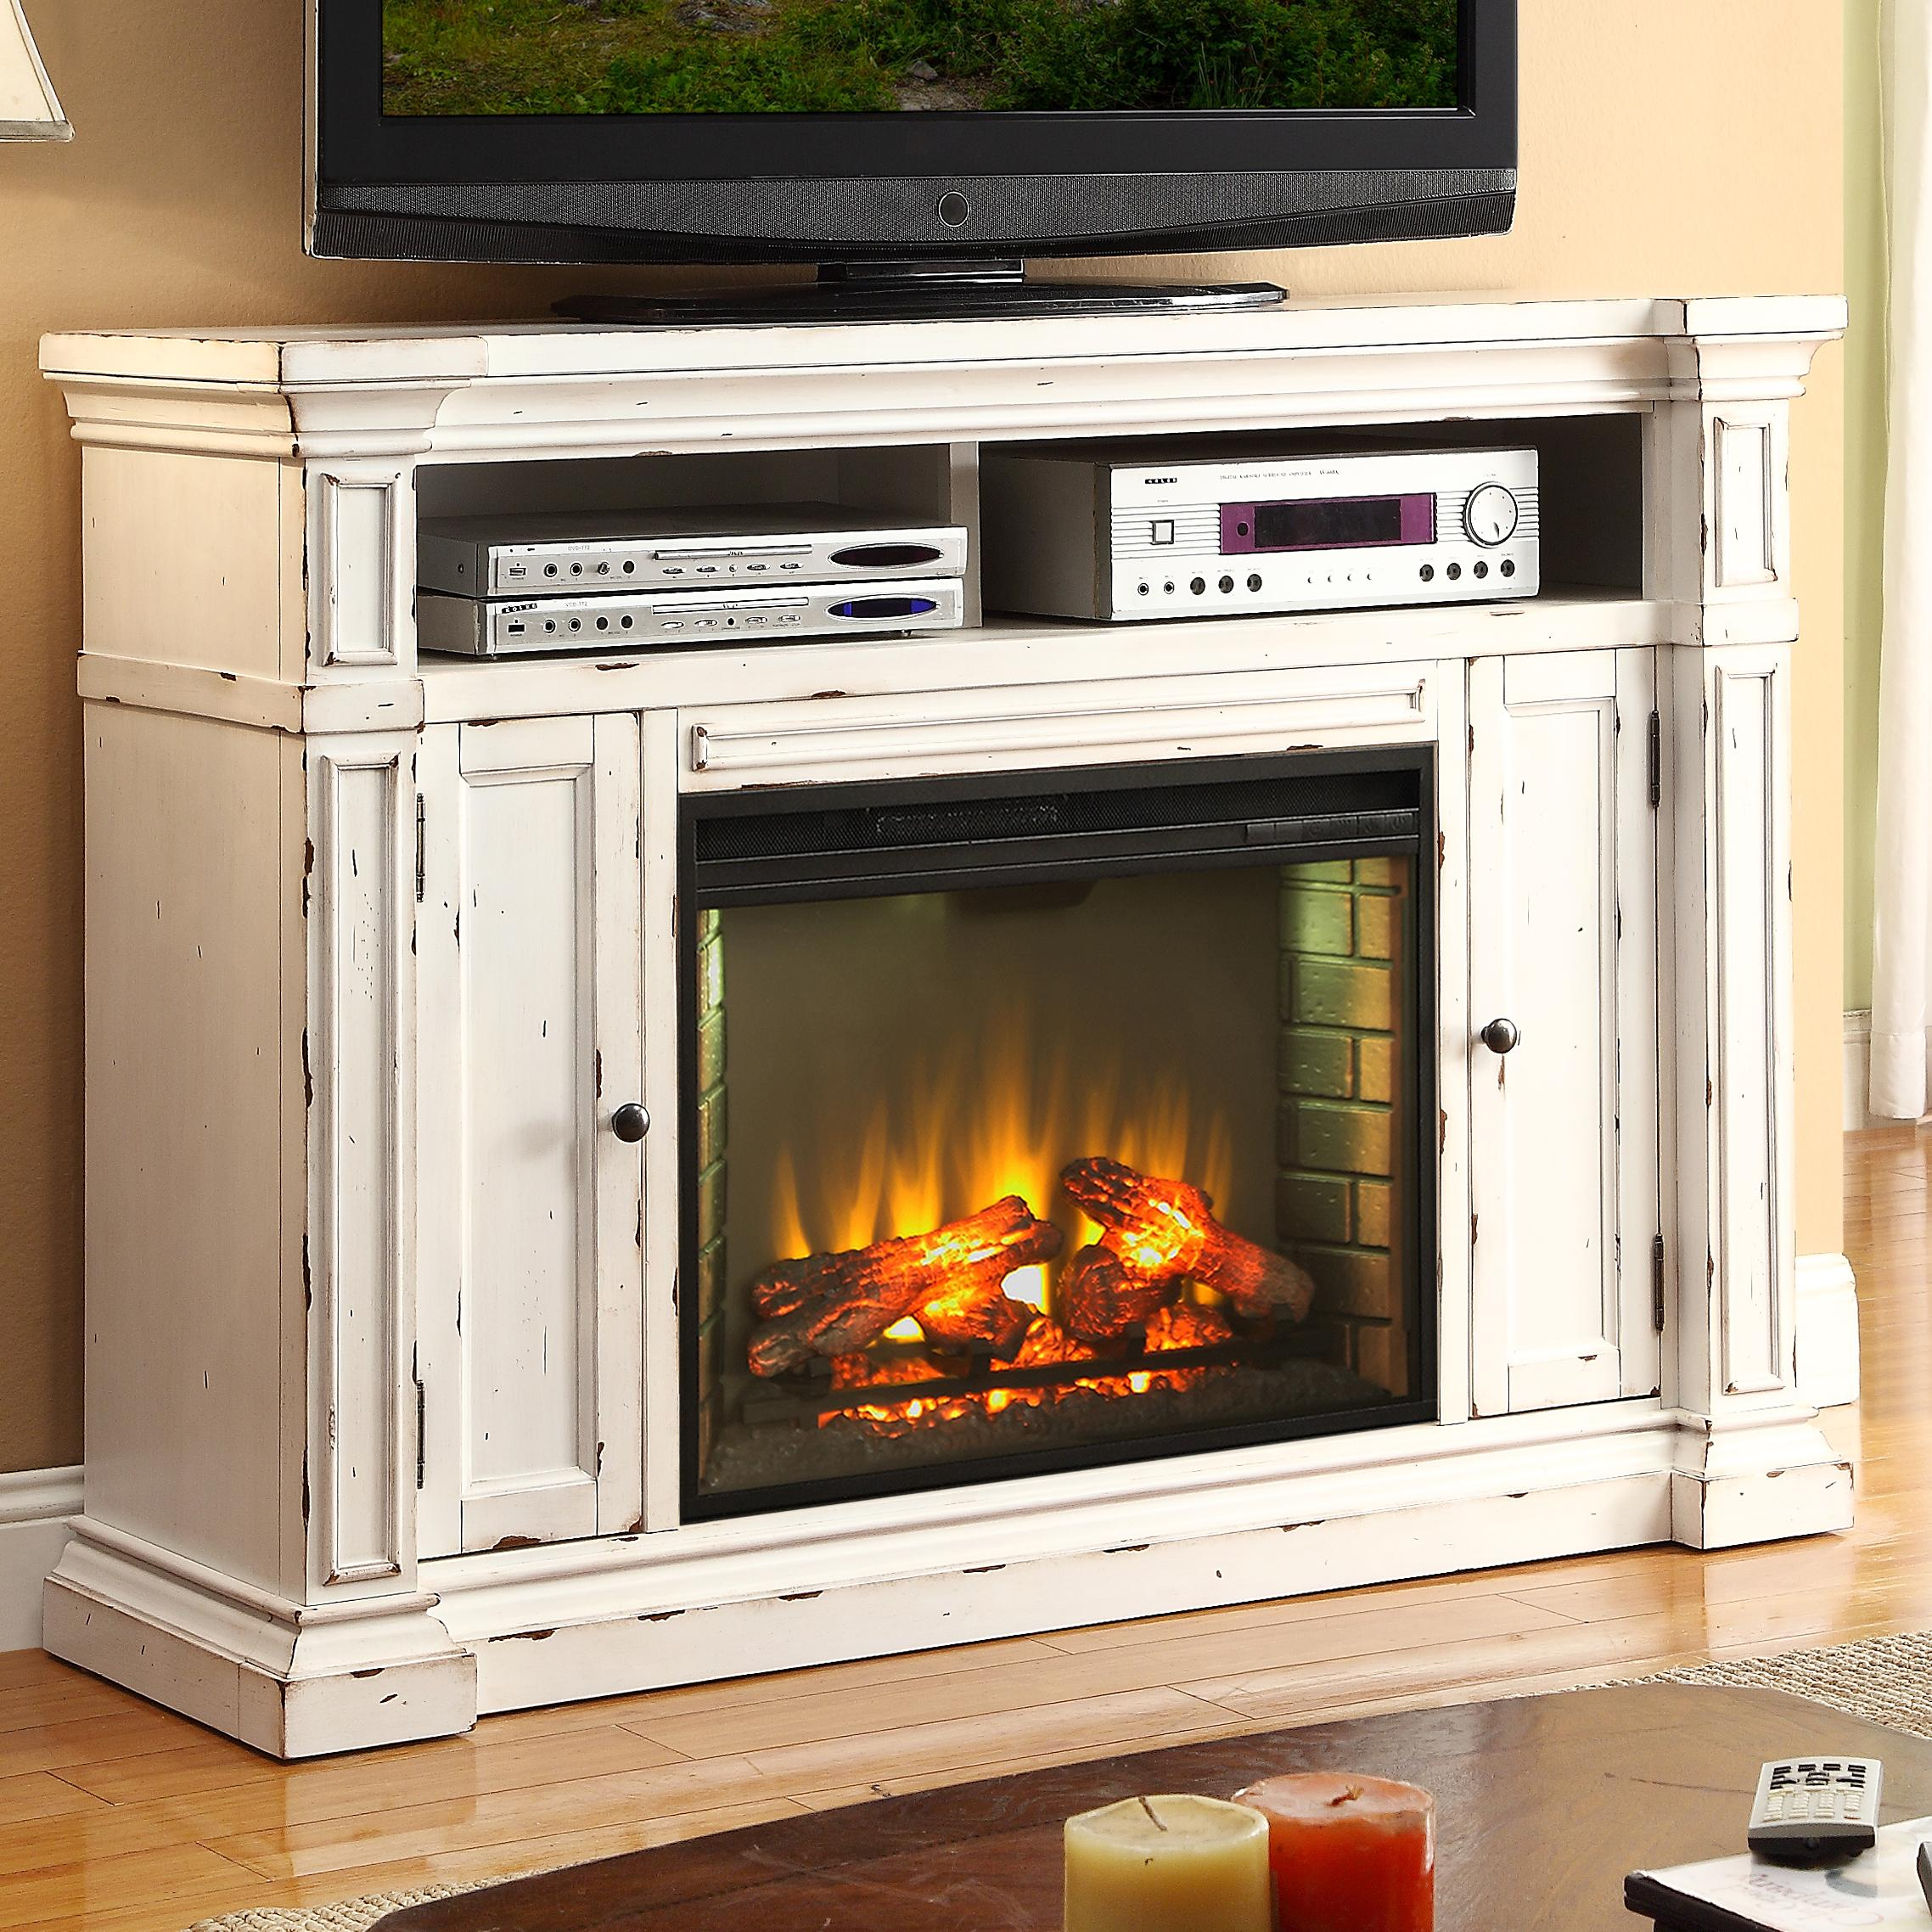 media free garden boulevard home product console espresso on branick orders fireplace shipping